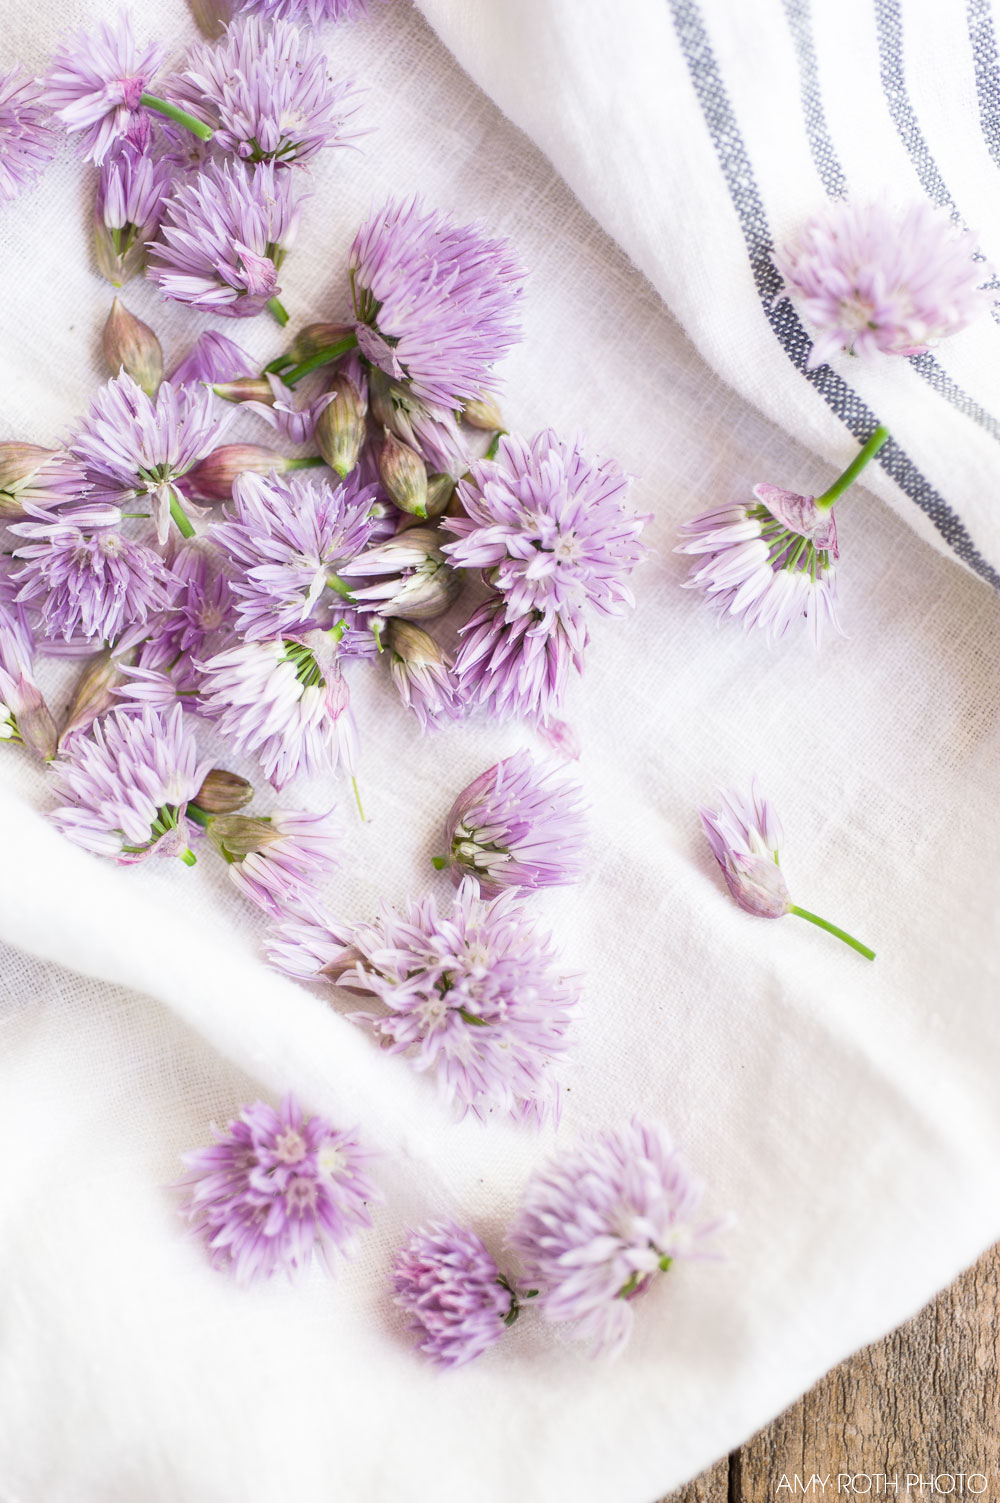 Chive Blossoms | Amy Roth Photo